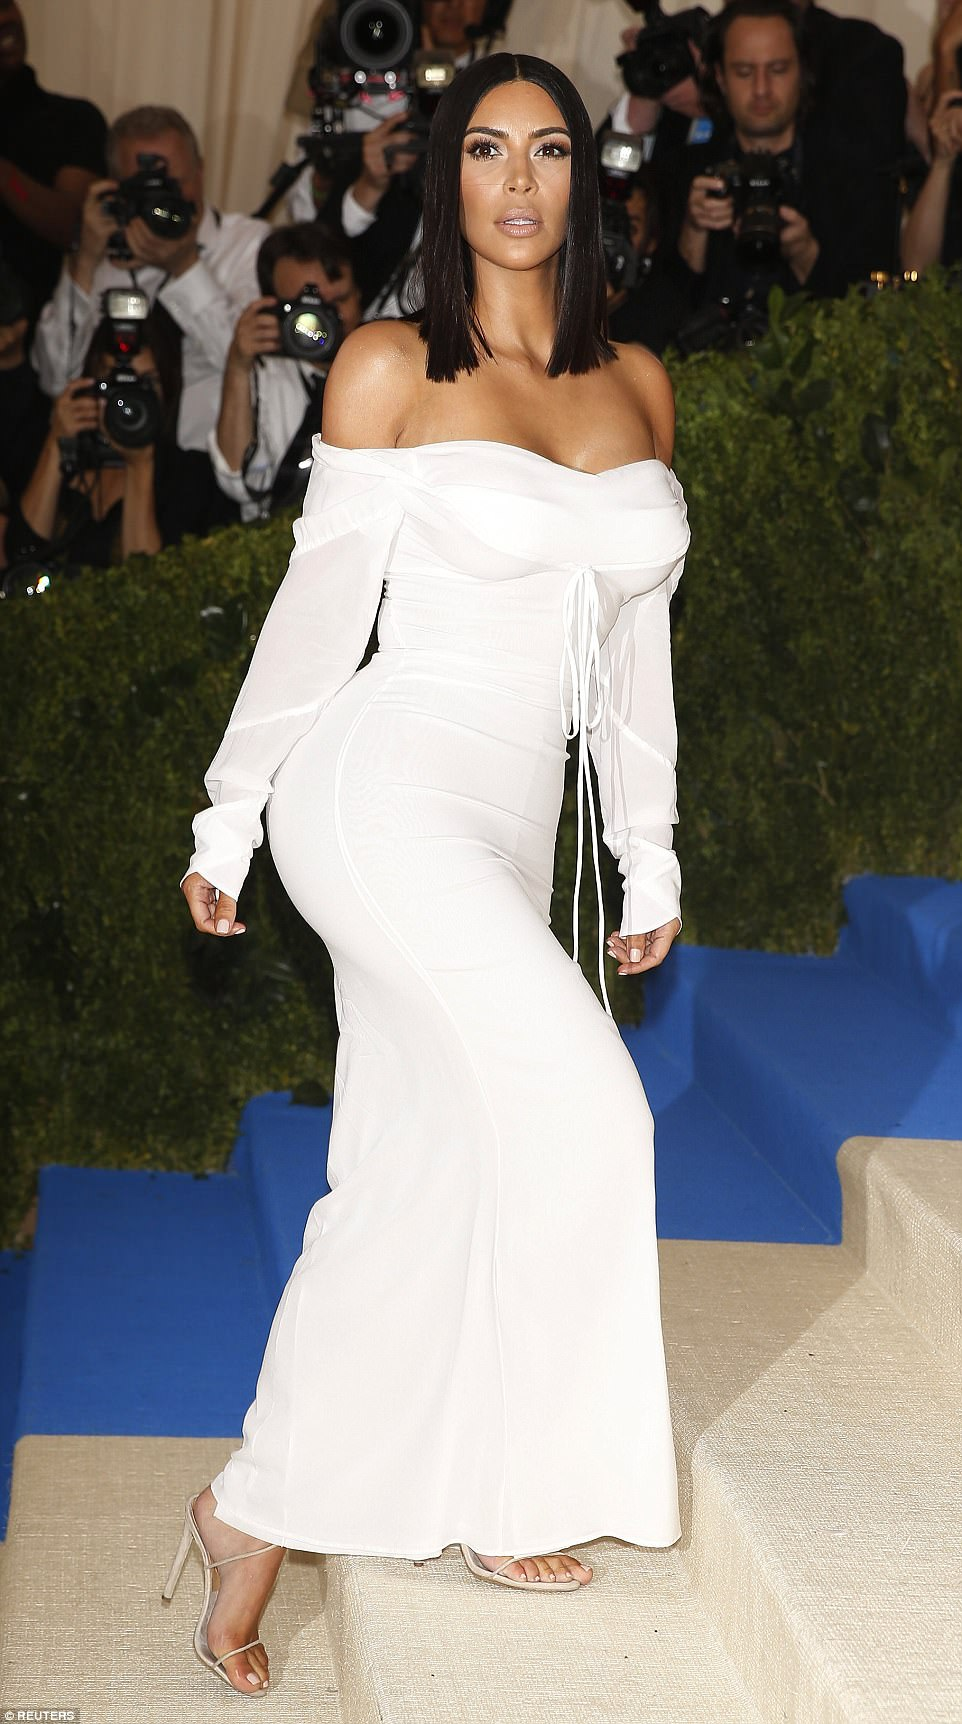 Solo: For the first time since she made her Met Gala debut in 2013, Kim was without husband Kanye West, who chose to stay home in LA rather than deal with the pressure of the event